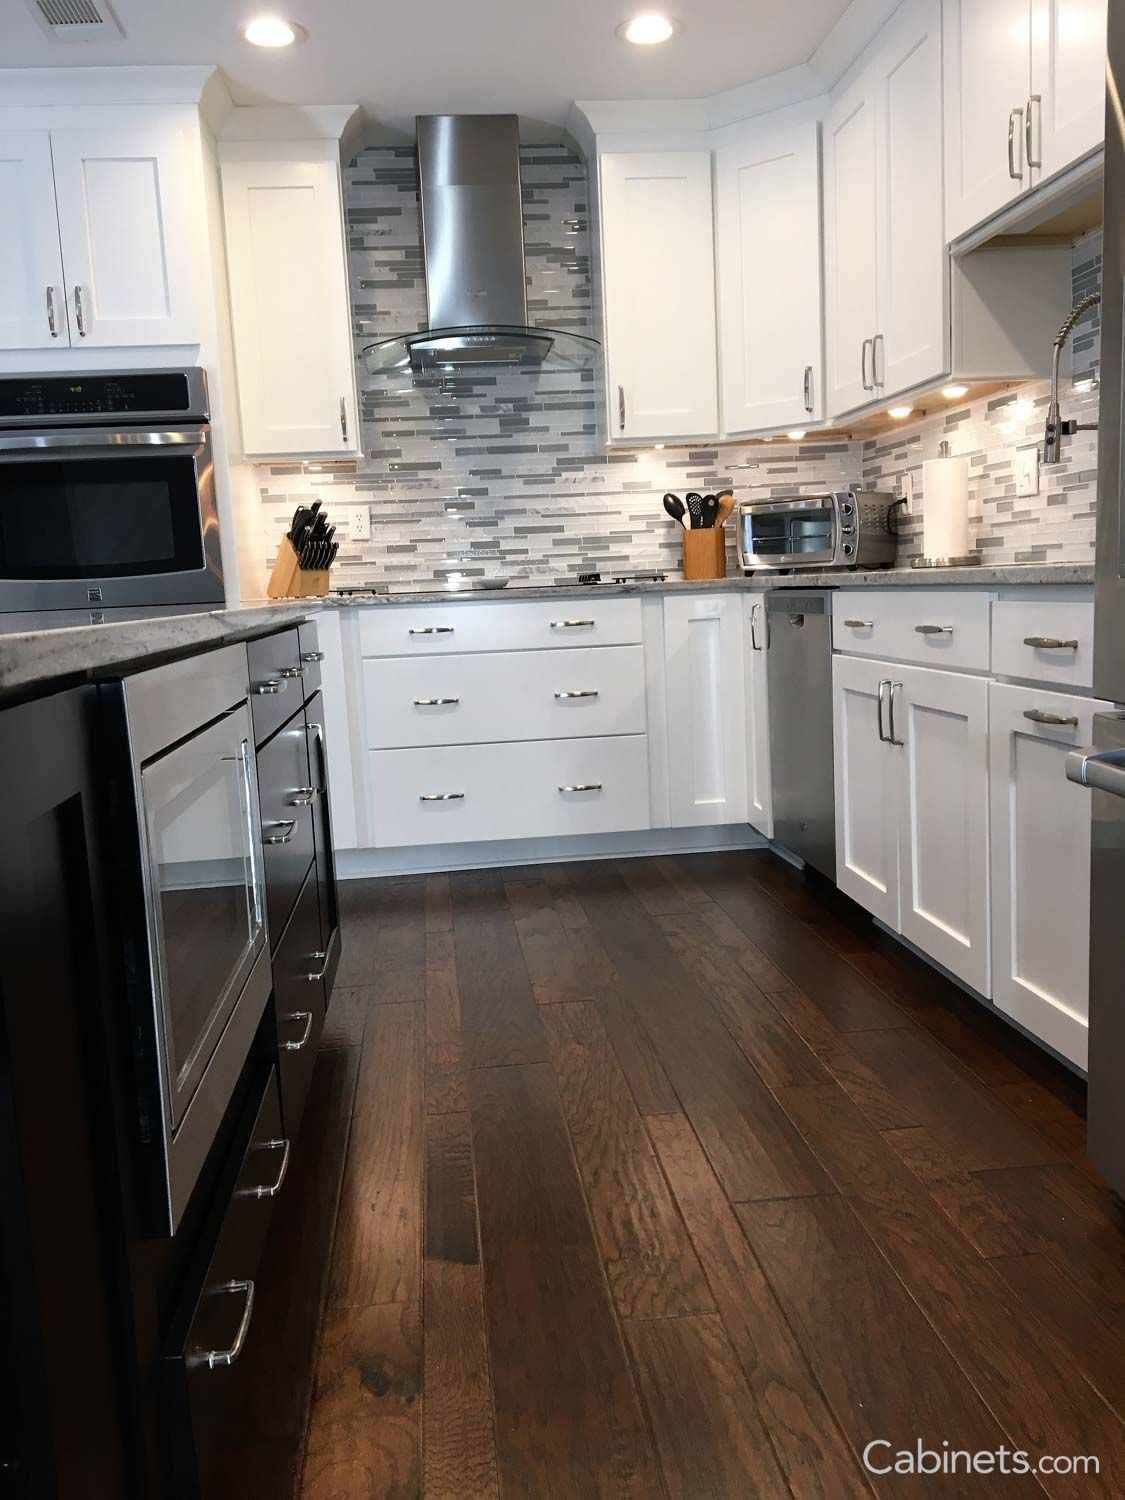 Shaker Maple Bright White Kitchen Cabinets Kitchen Cabinets Home Depot Modern Kitchen Renovation